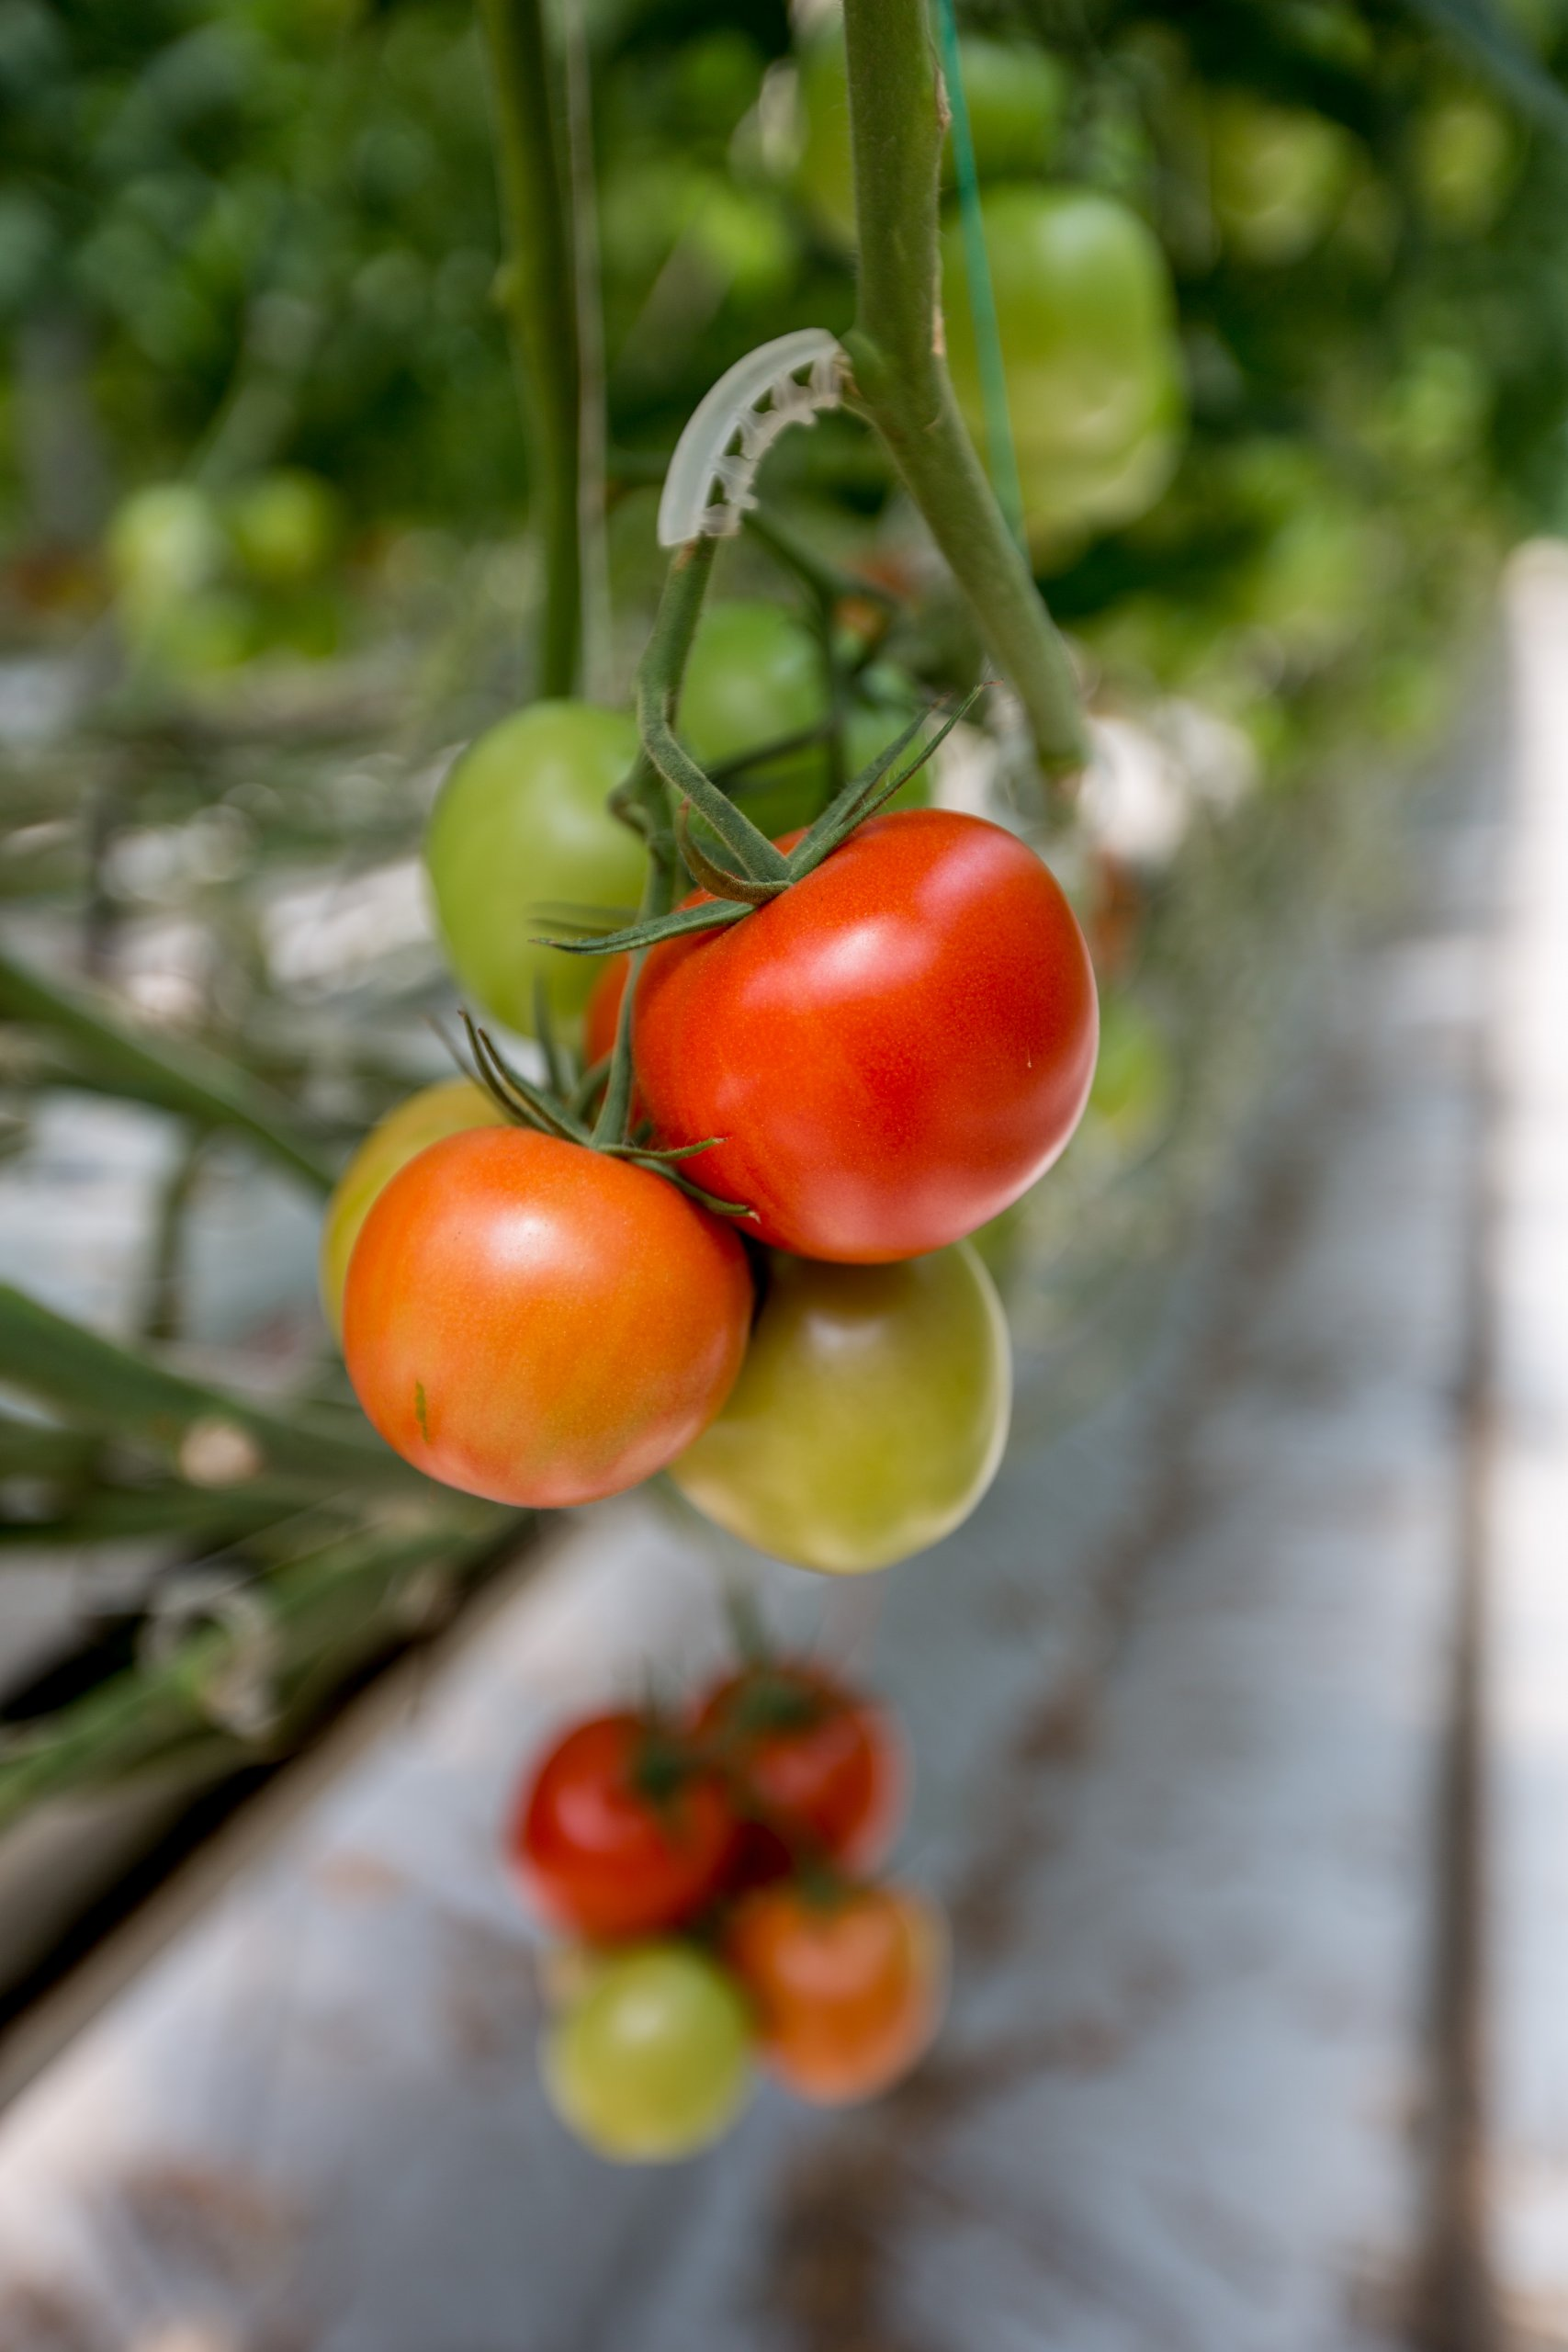 Sustainability, Food Security, and Farm Safety